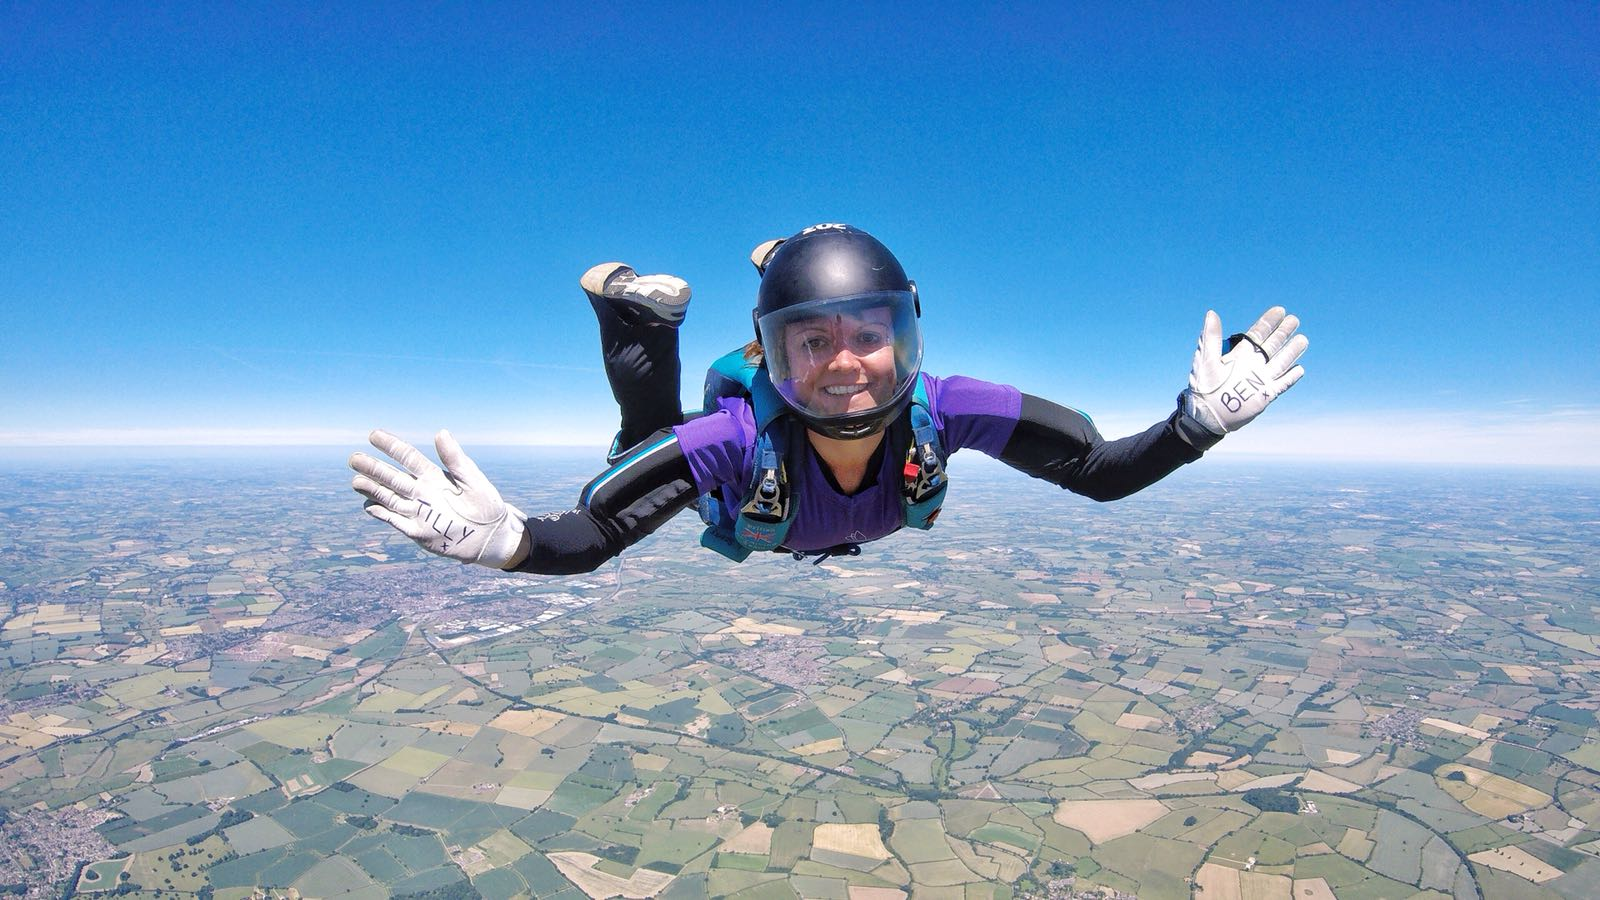 Tandem Skydiving, Parachute Jumping for Charity UK!